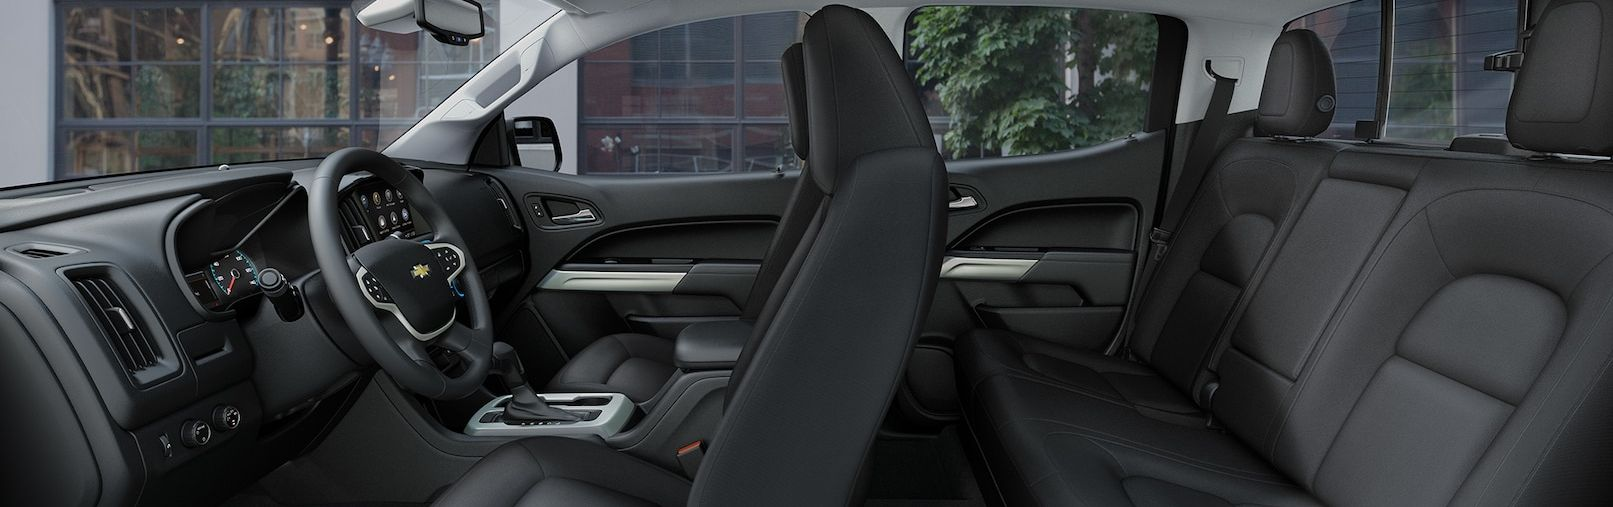 Accommodating Interior of the 2019 Chevrolet Colorado